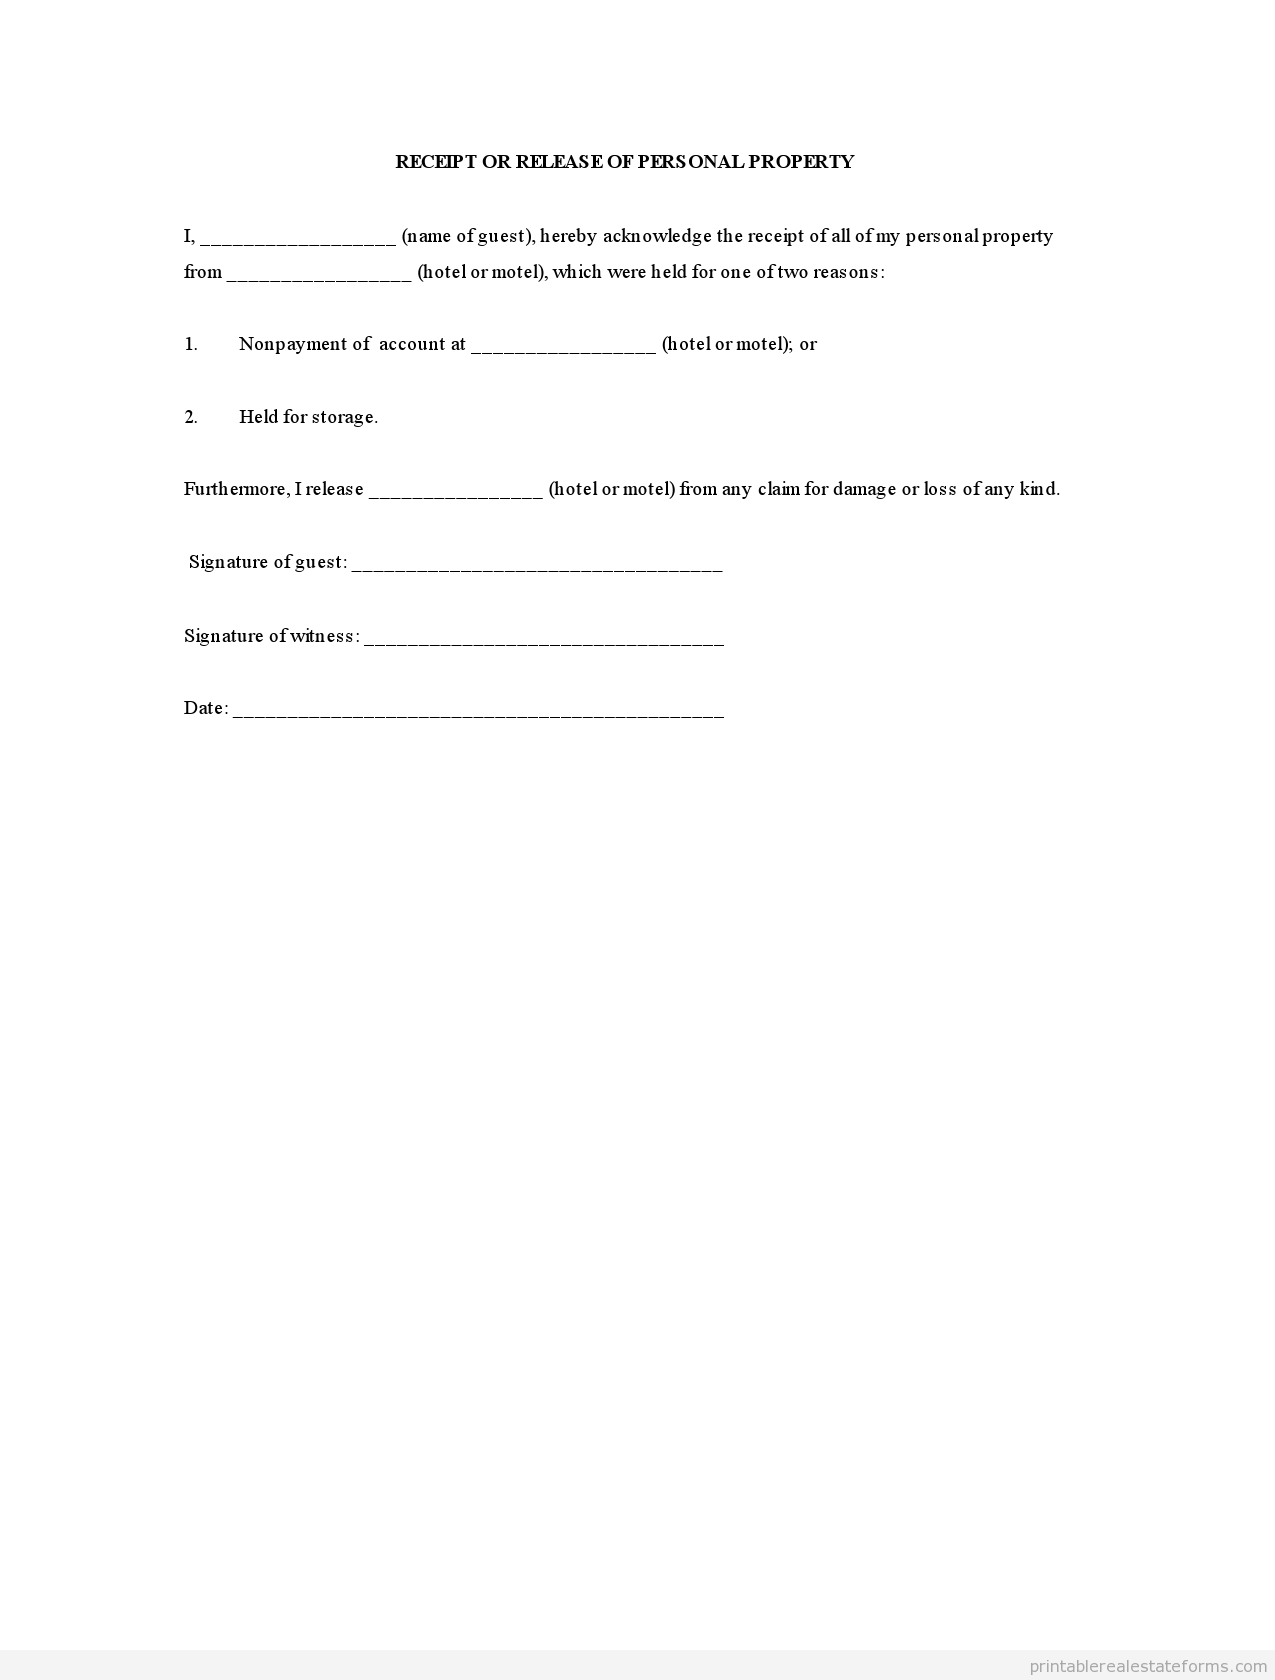 Free Personal Property Release Form Sample Letter Pdf Personal Property Real Estate Forms Legal Forms